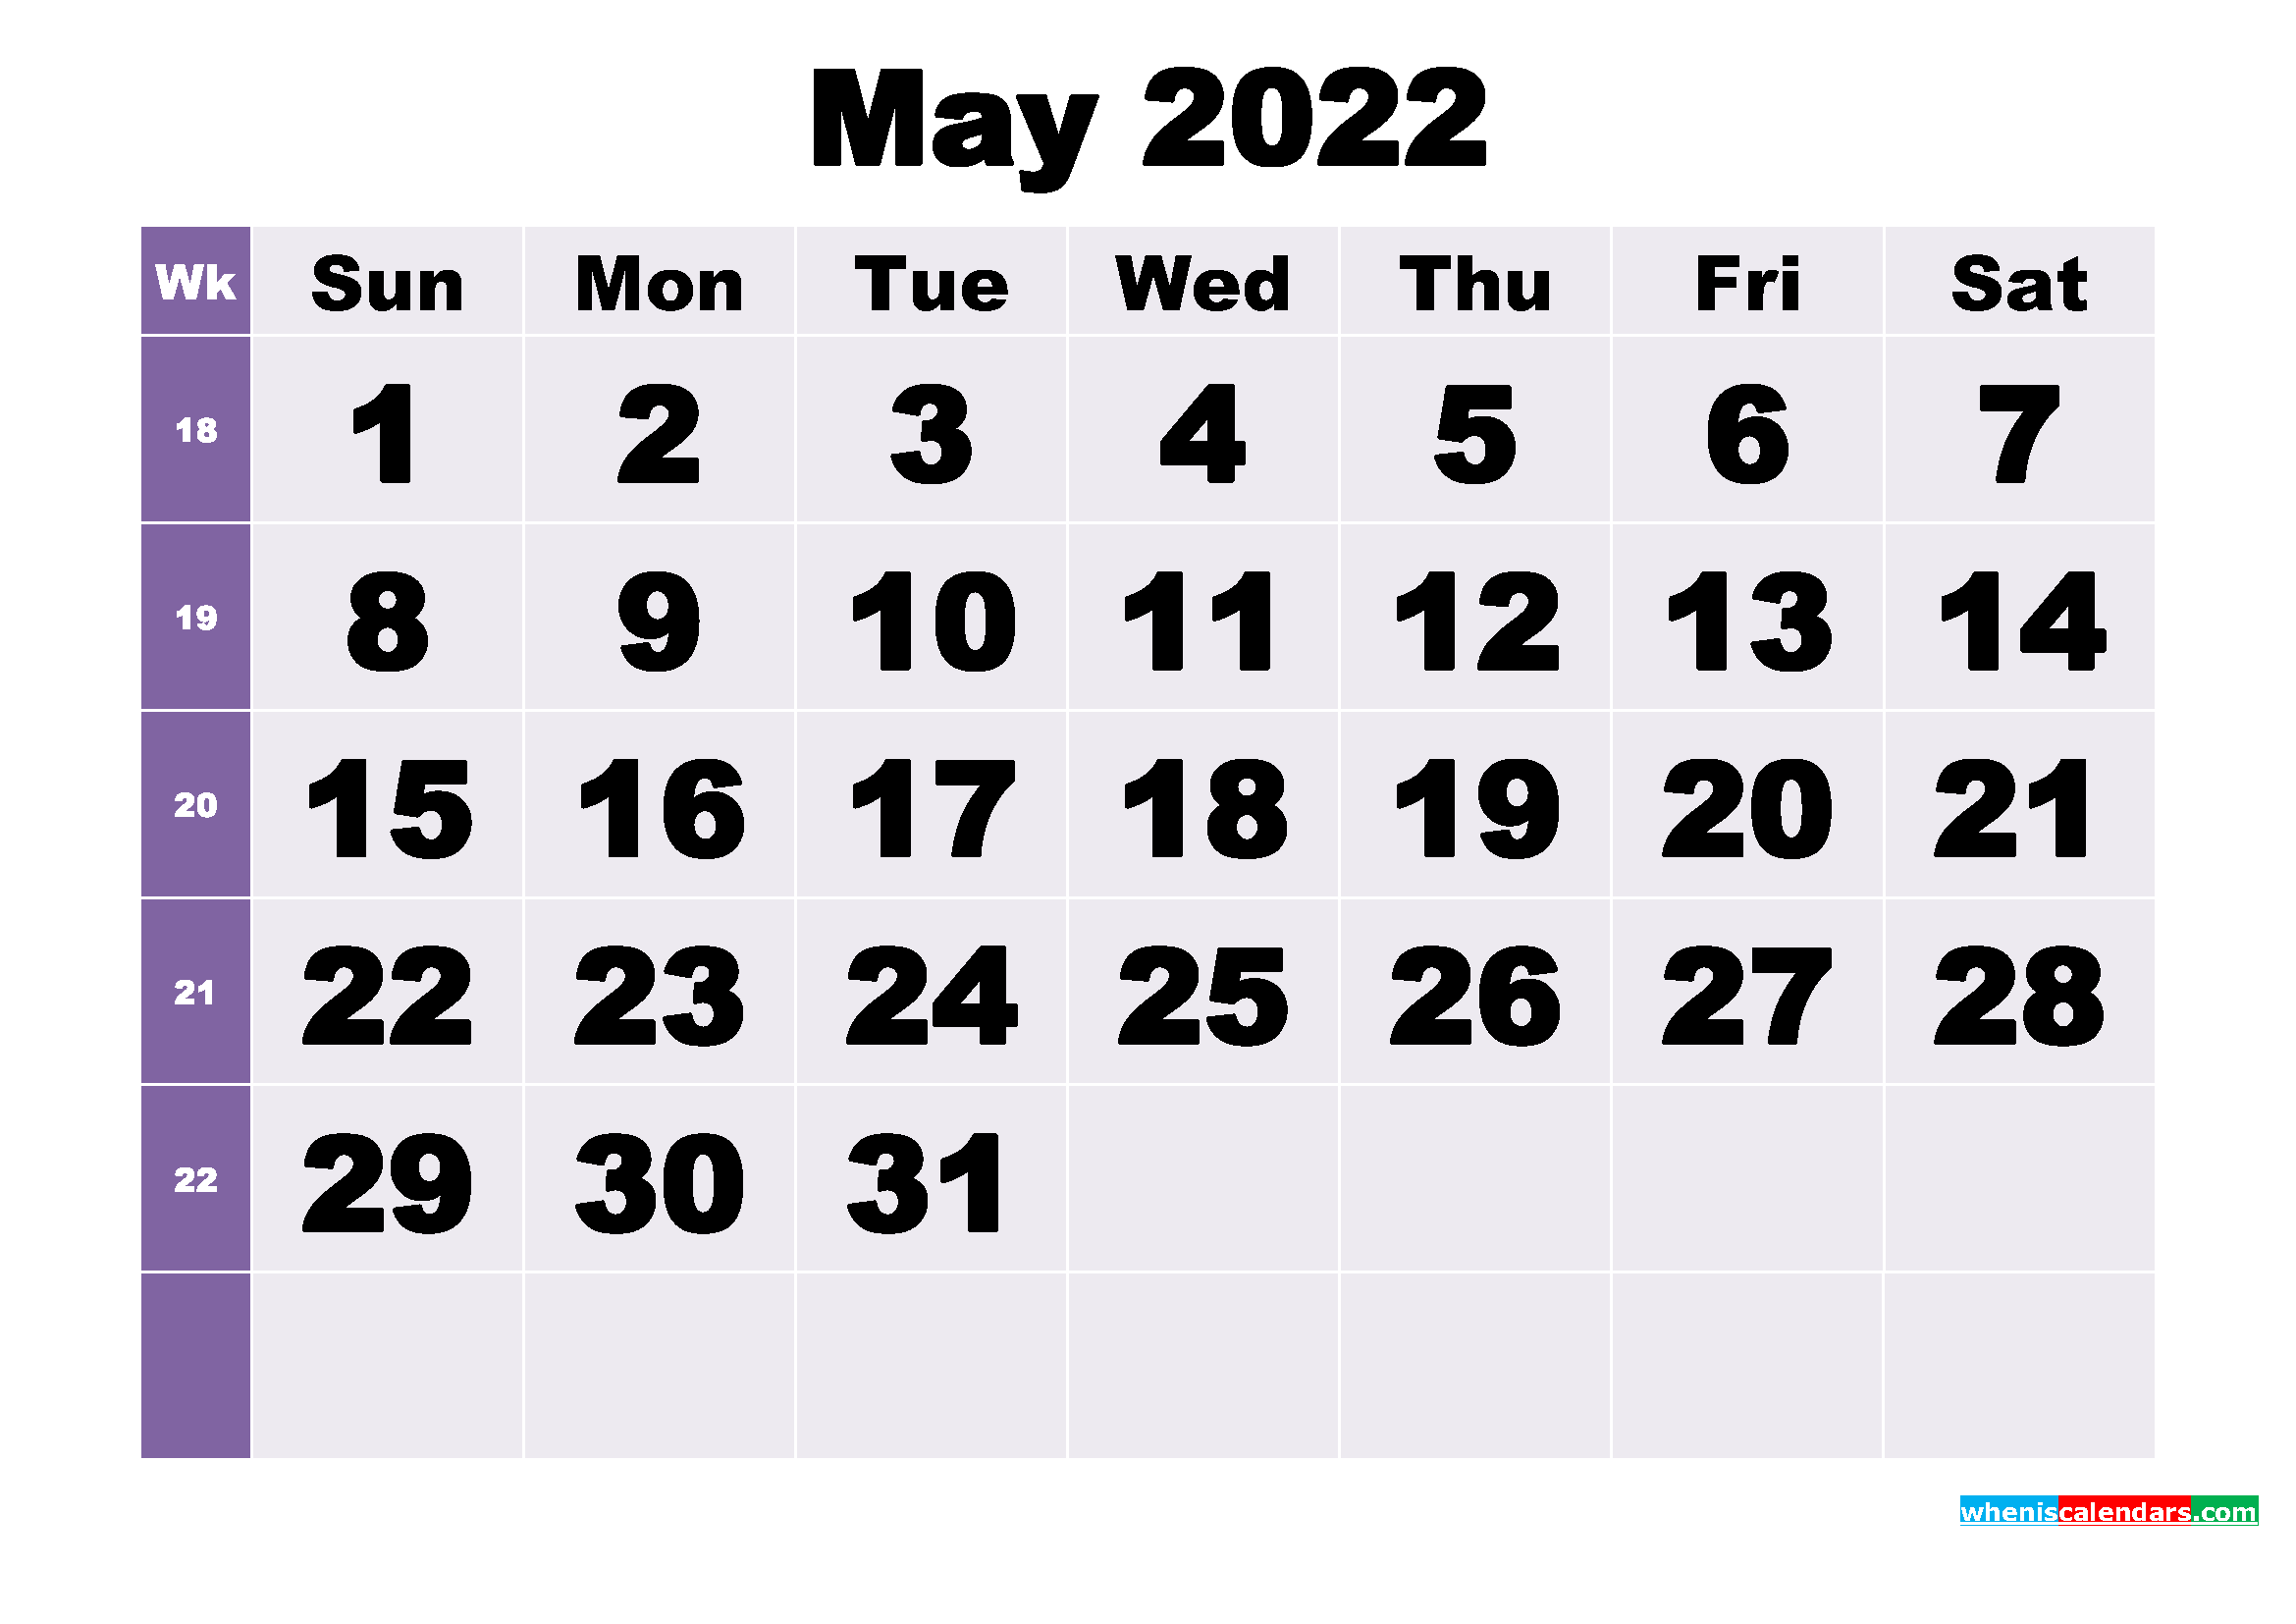 If you're in need of a 2021 calendar, you can find the 2021 floral printable calendar here. Free May 2022 Printable Monthly Calendar Template